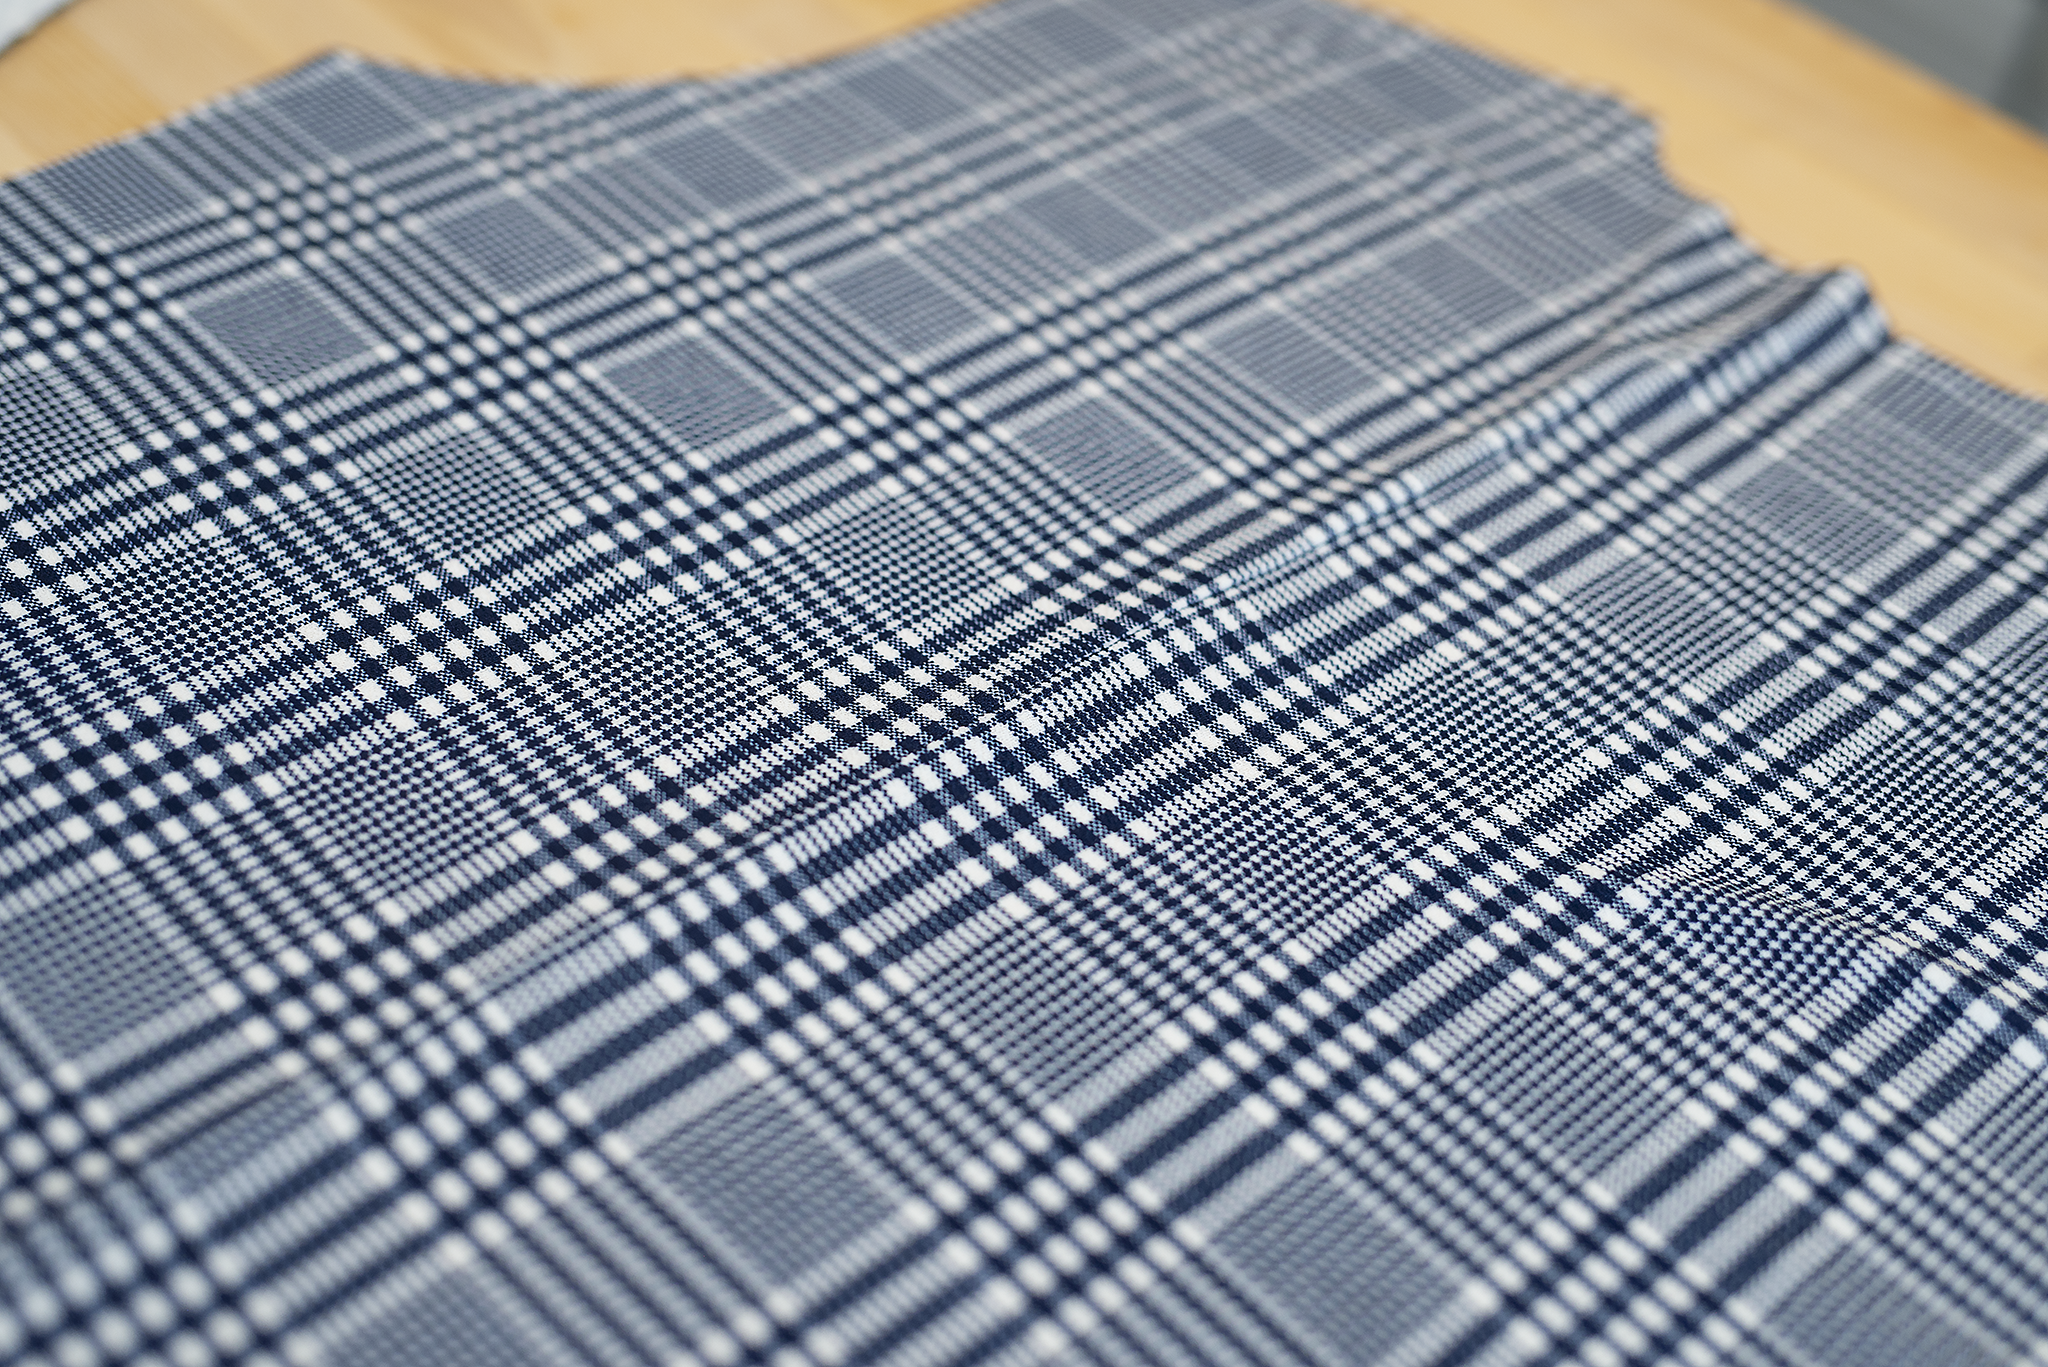 picture of cut cardigan fabric